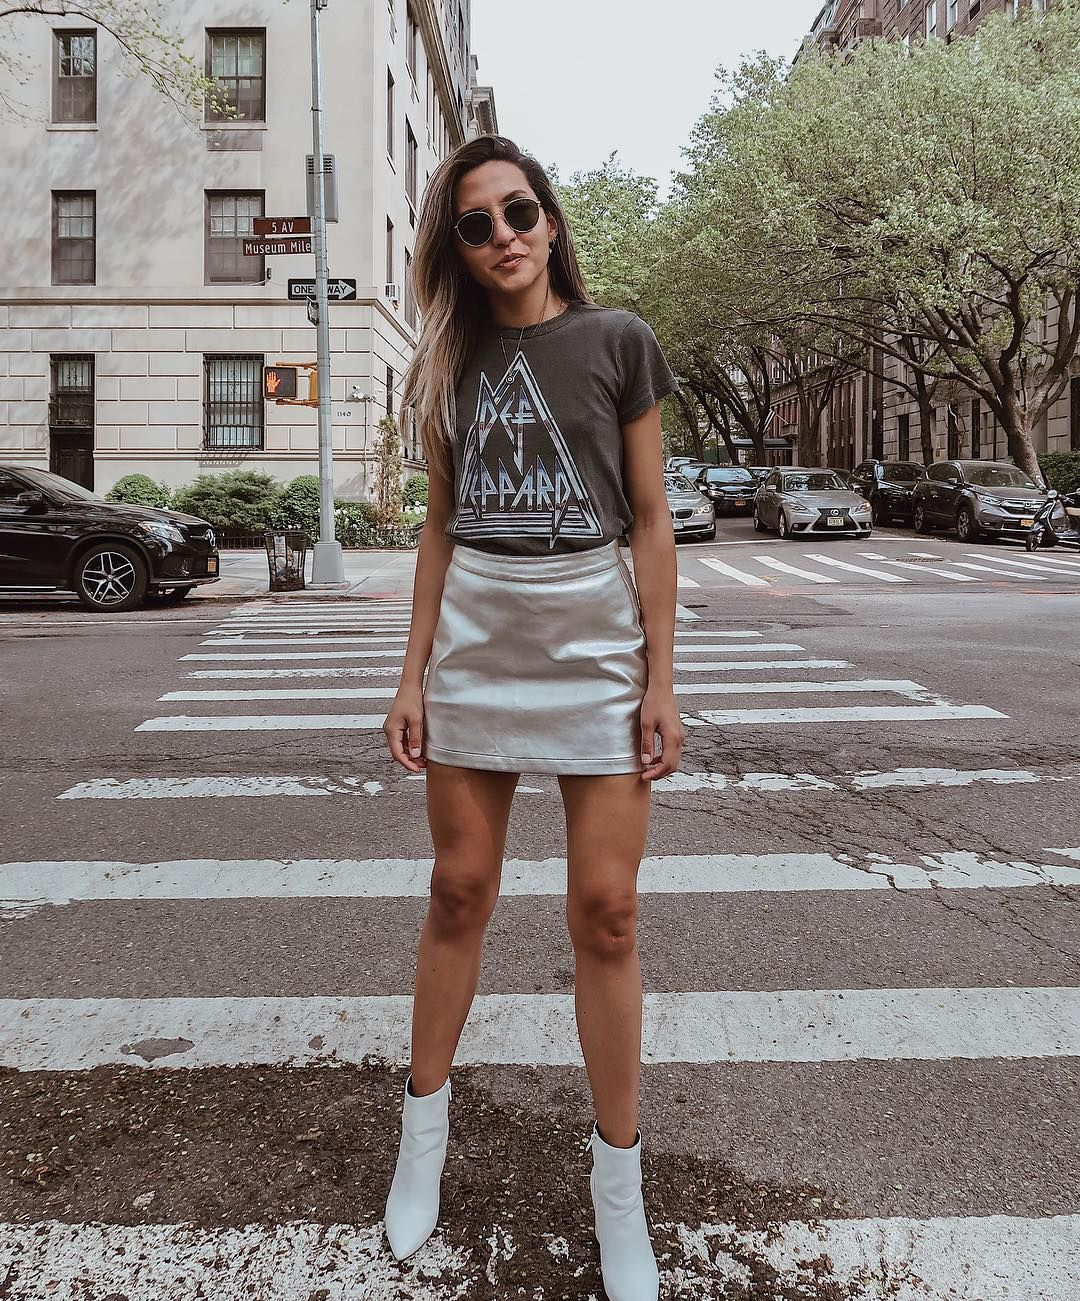 e0c3a6298c3a silver skirt and white boots outfit